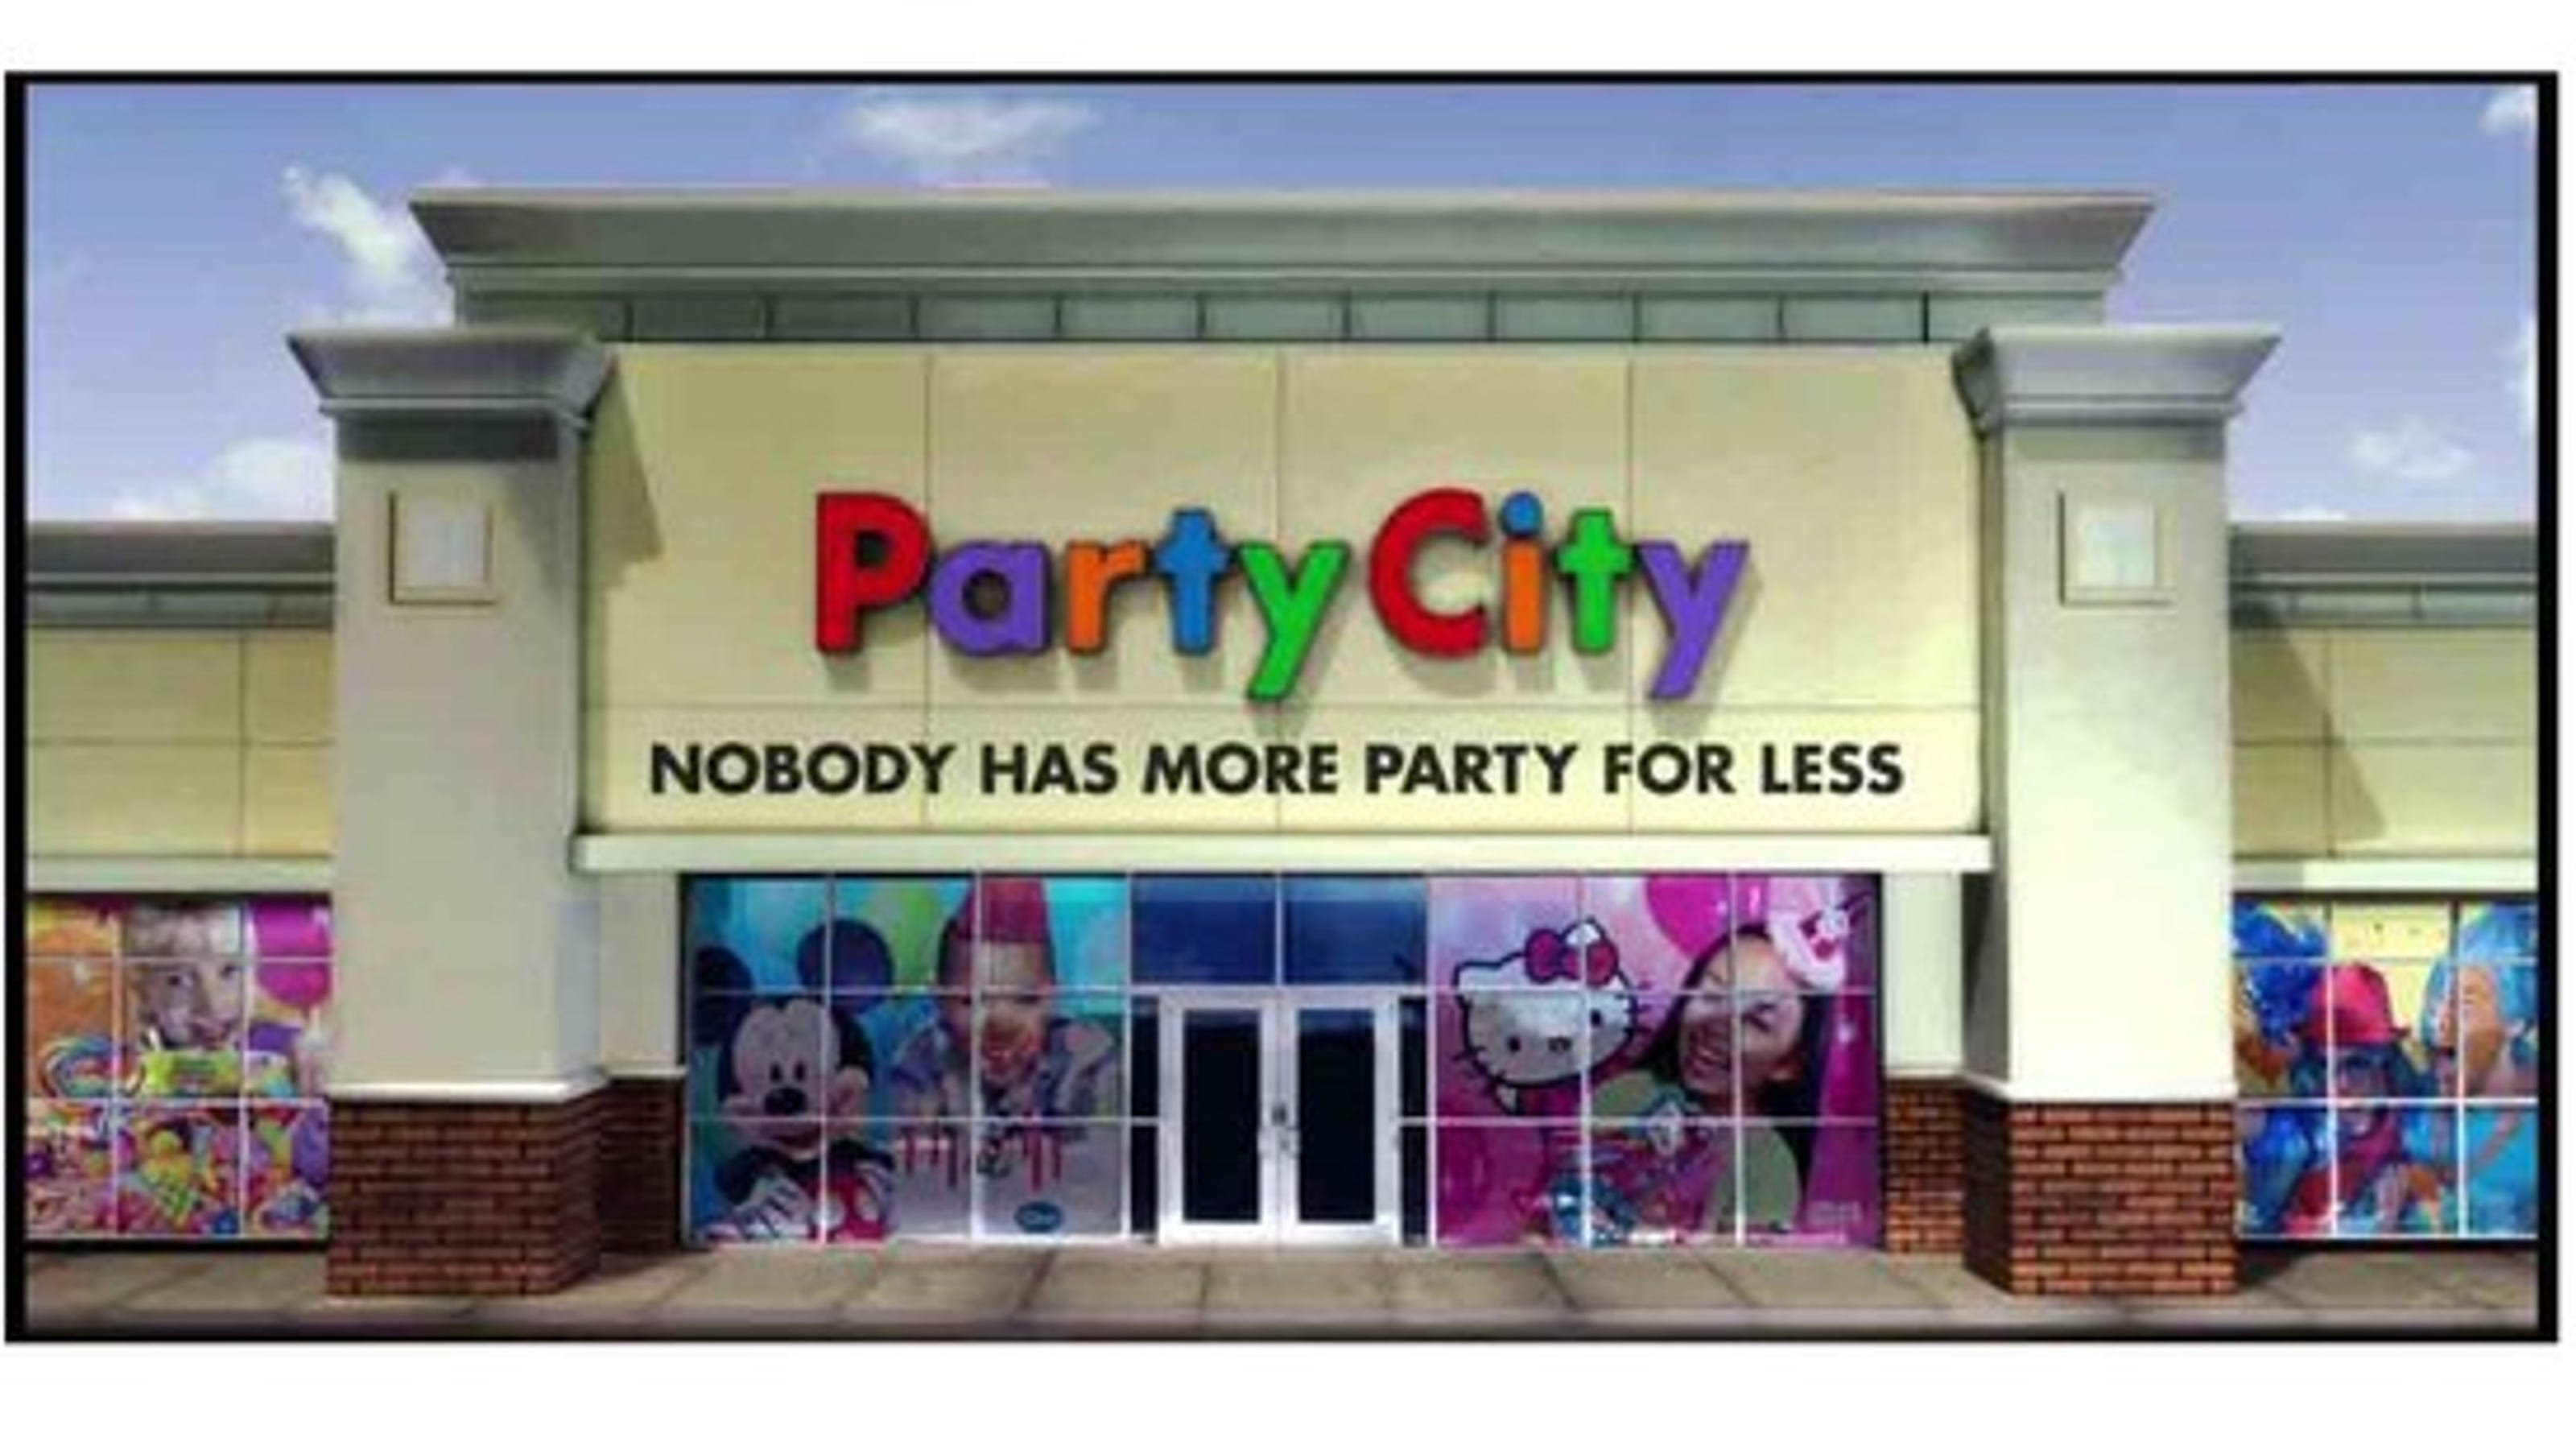 party city to open 50 pop-up toy stores after toys r us liquidation